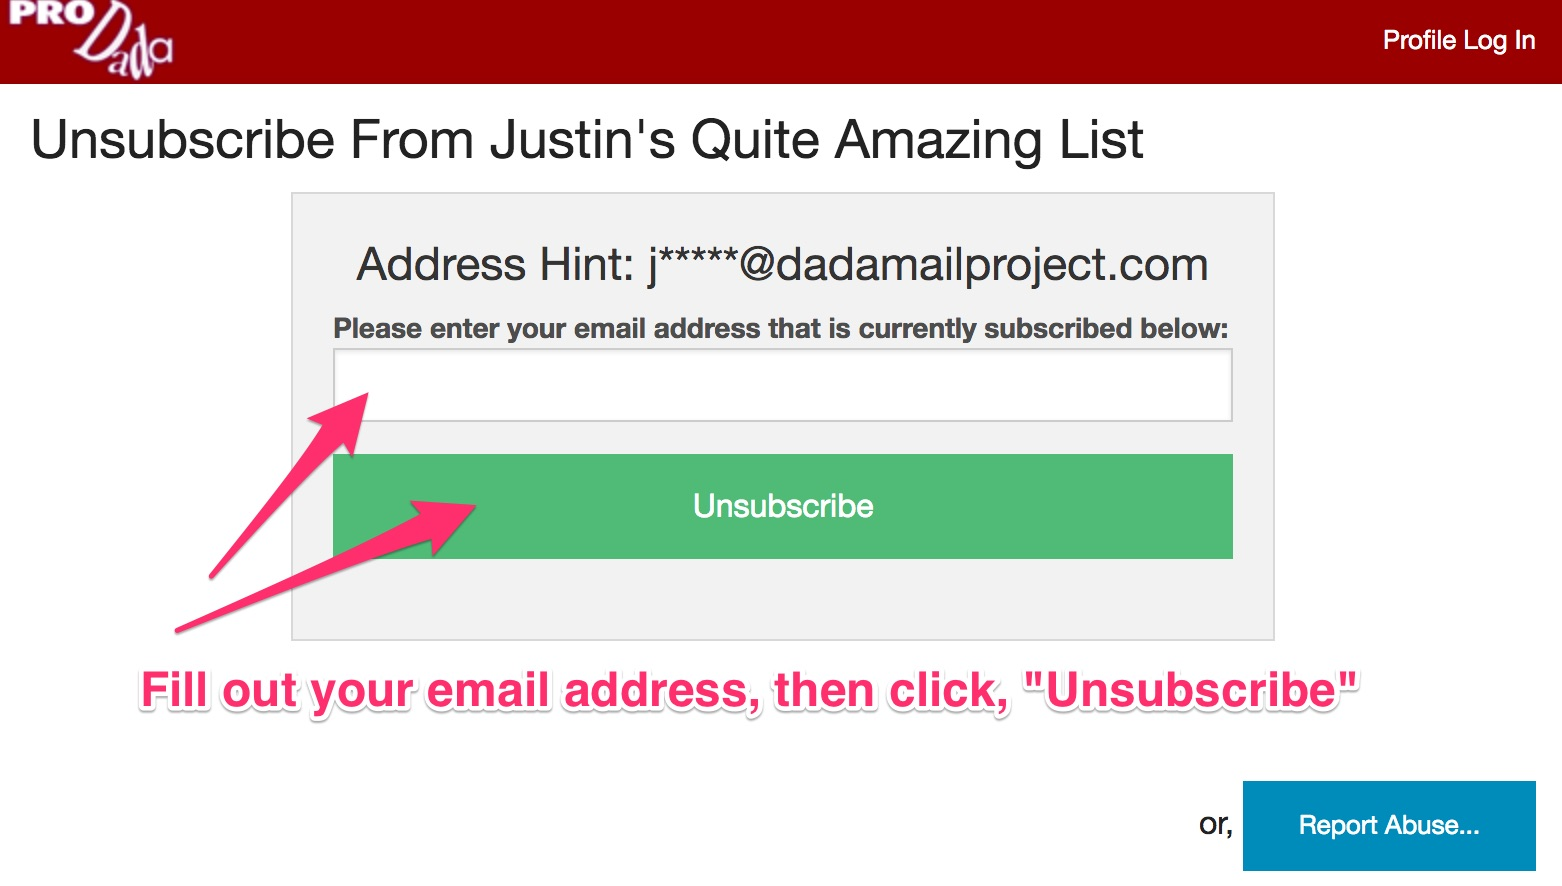 Fill out the form with your email address to unsubscribe